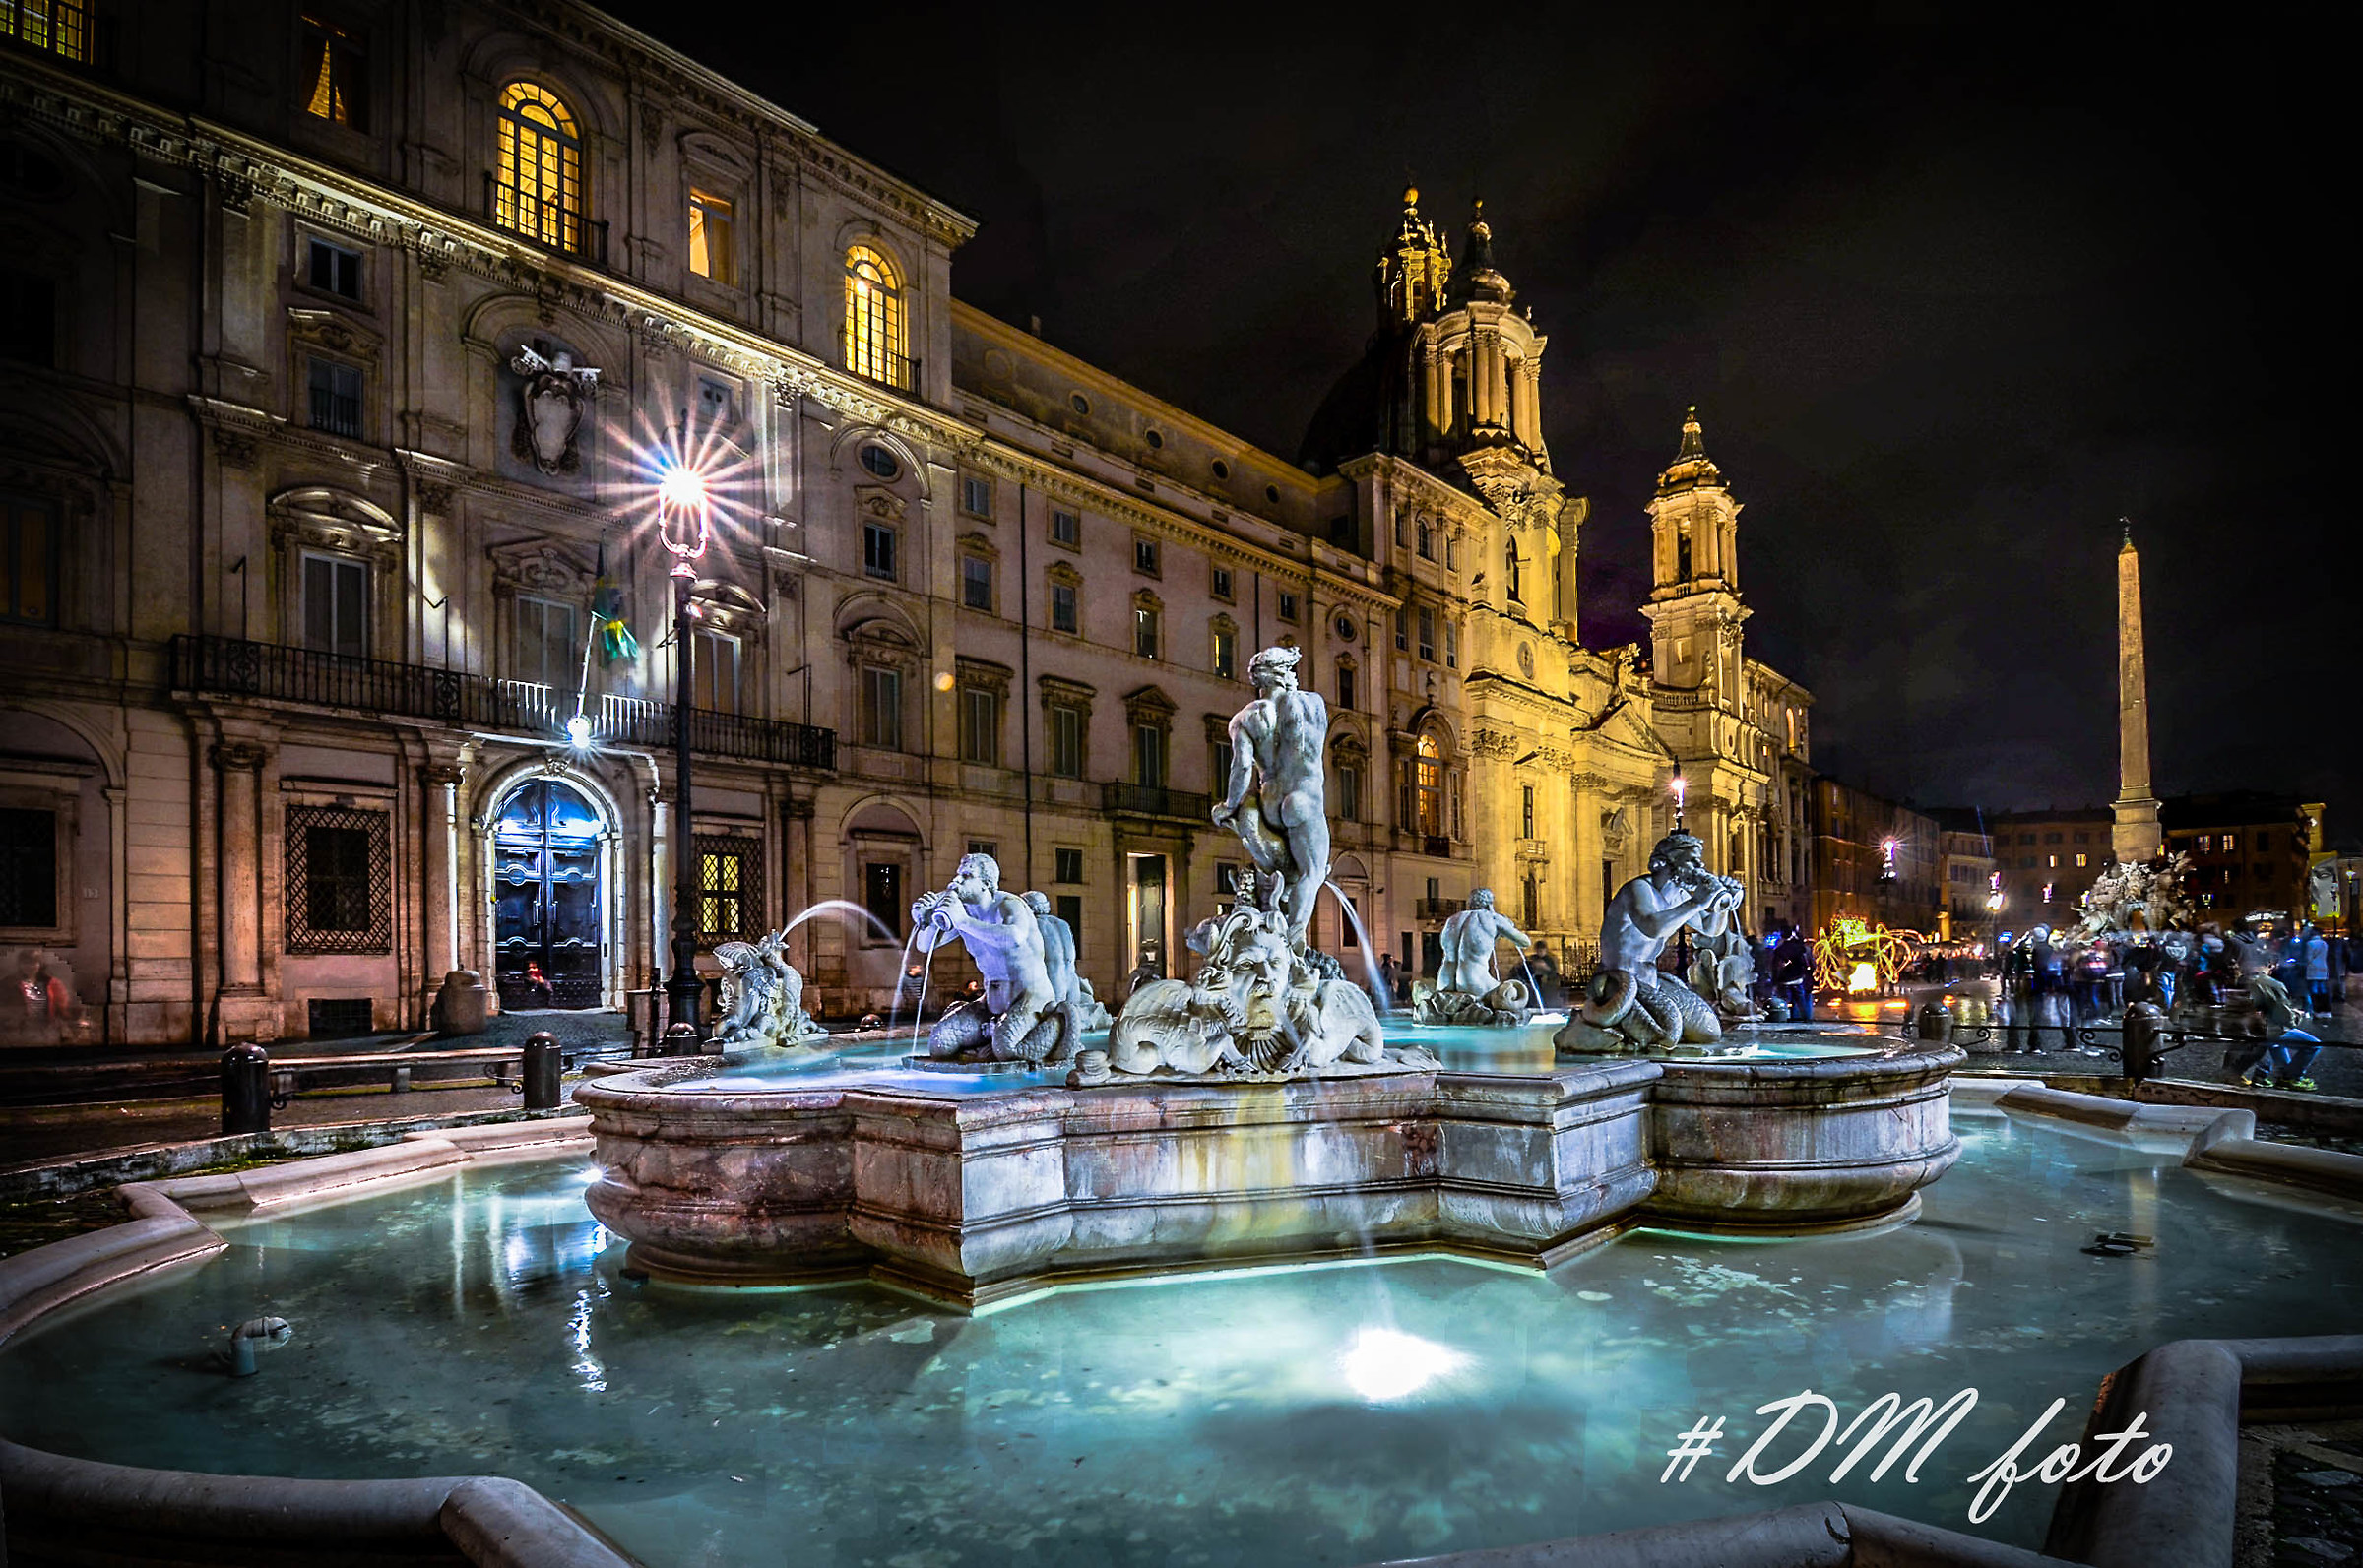 Bernini's Fountains (Piazza Navona)...